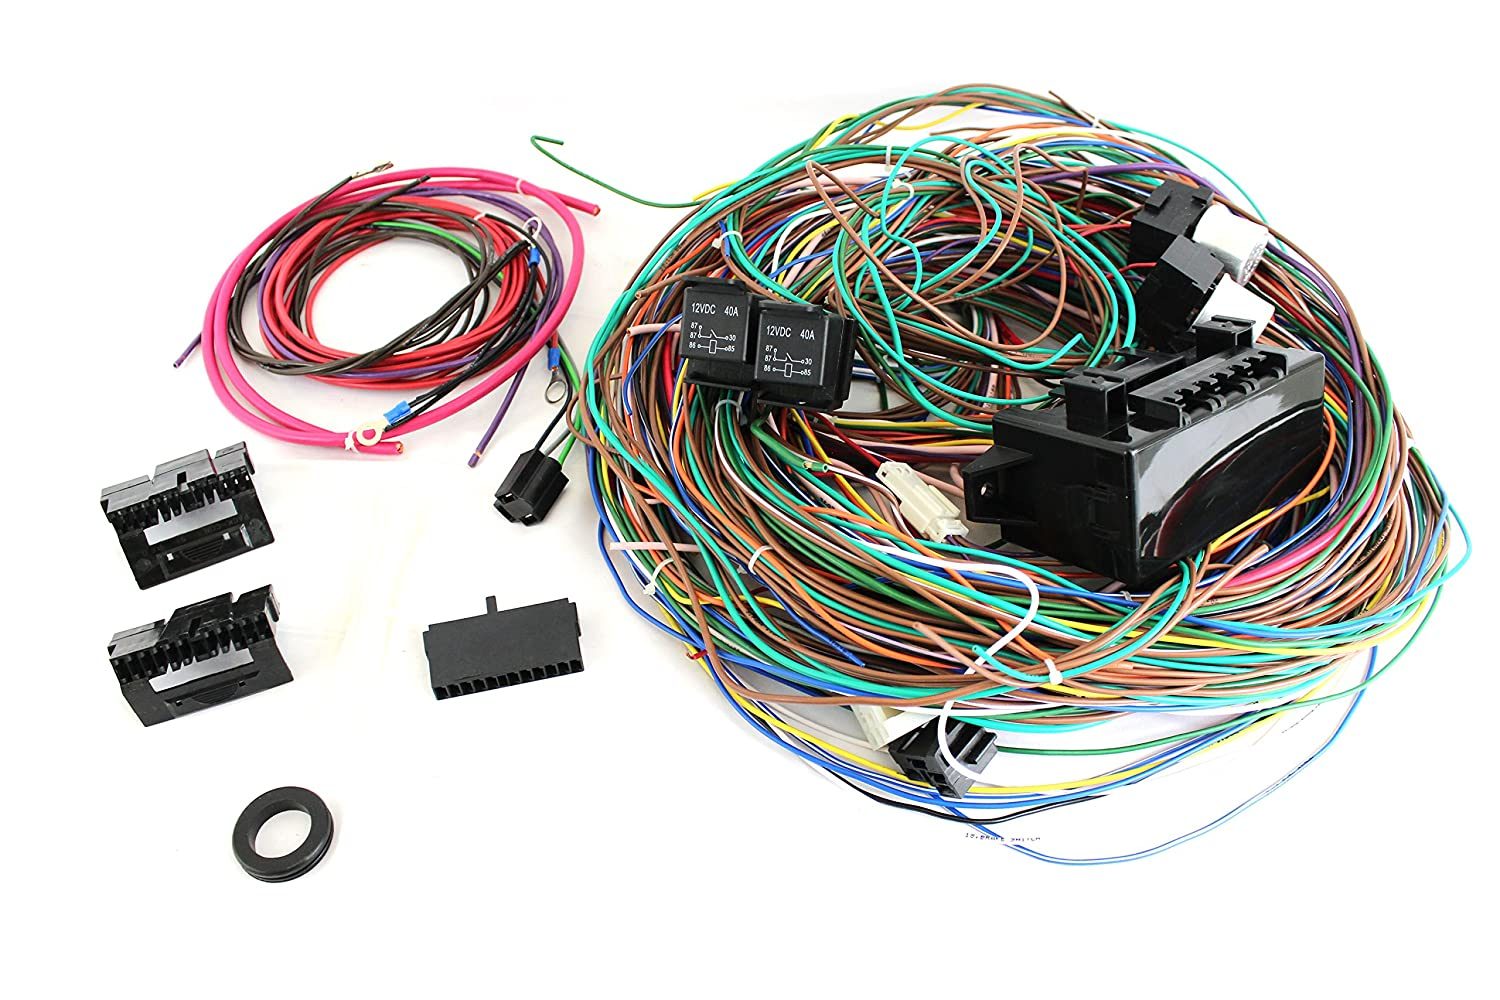 91YoamXFx2L._SL1500_ amazon com 12v 24 circuit 15 fuse street hot rat rod wiring best street rod wiring harness at aneh.co